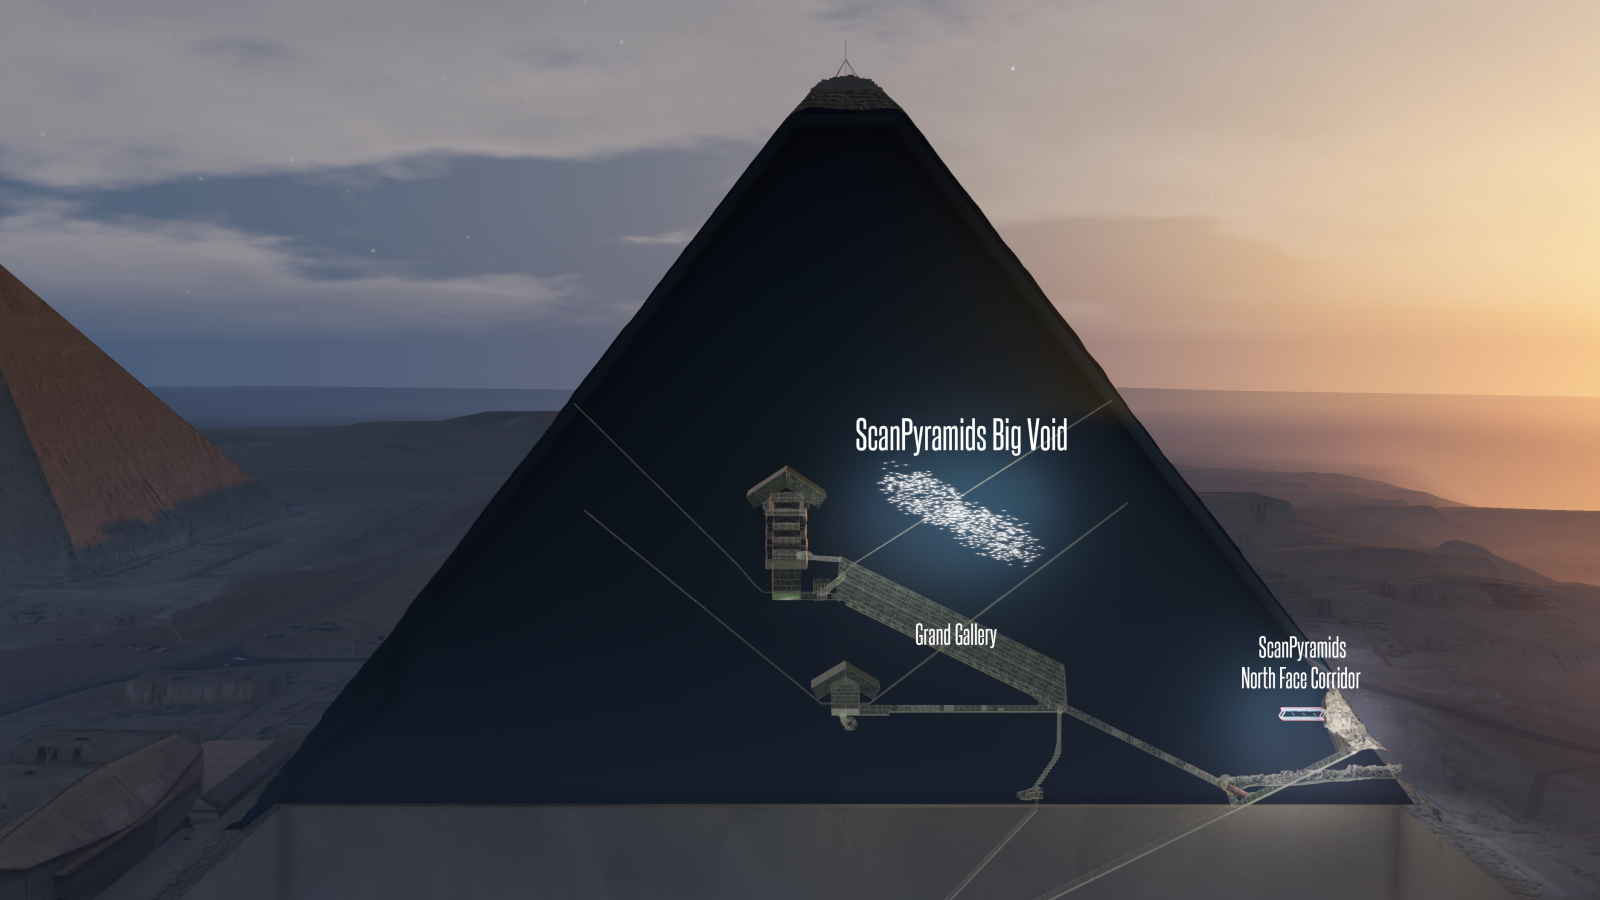 ScanPyramids Big Void 3D Artistic view horizontal option